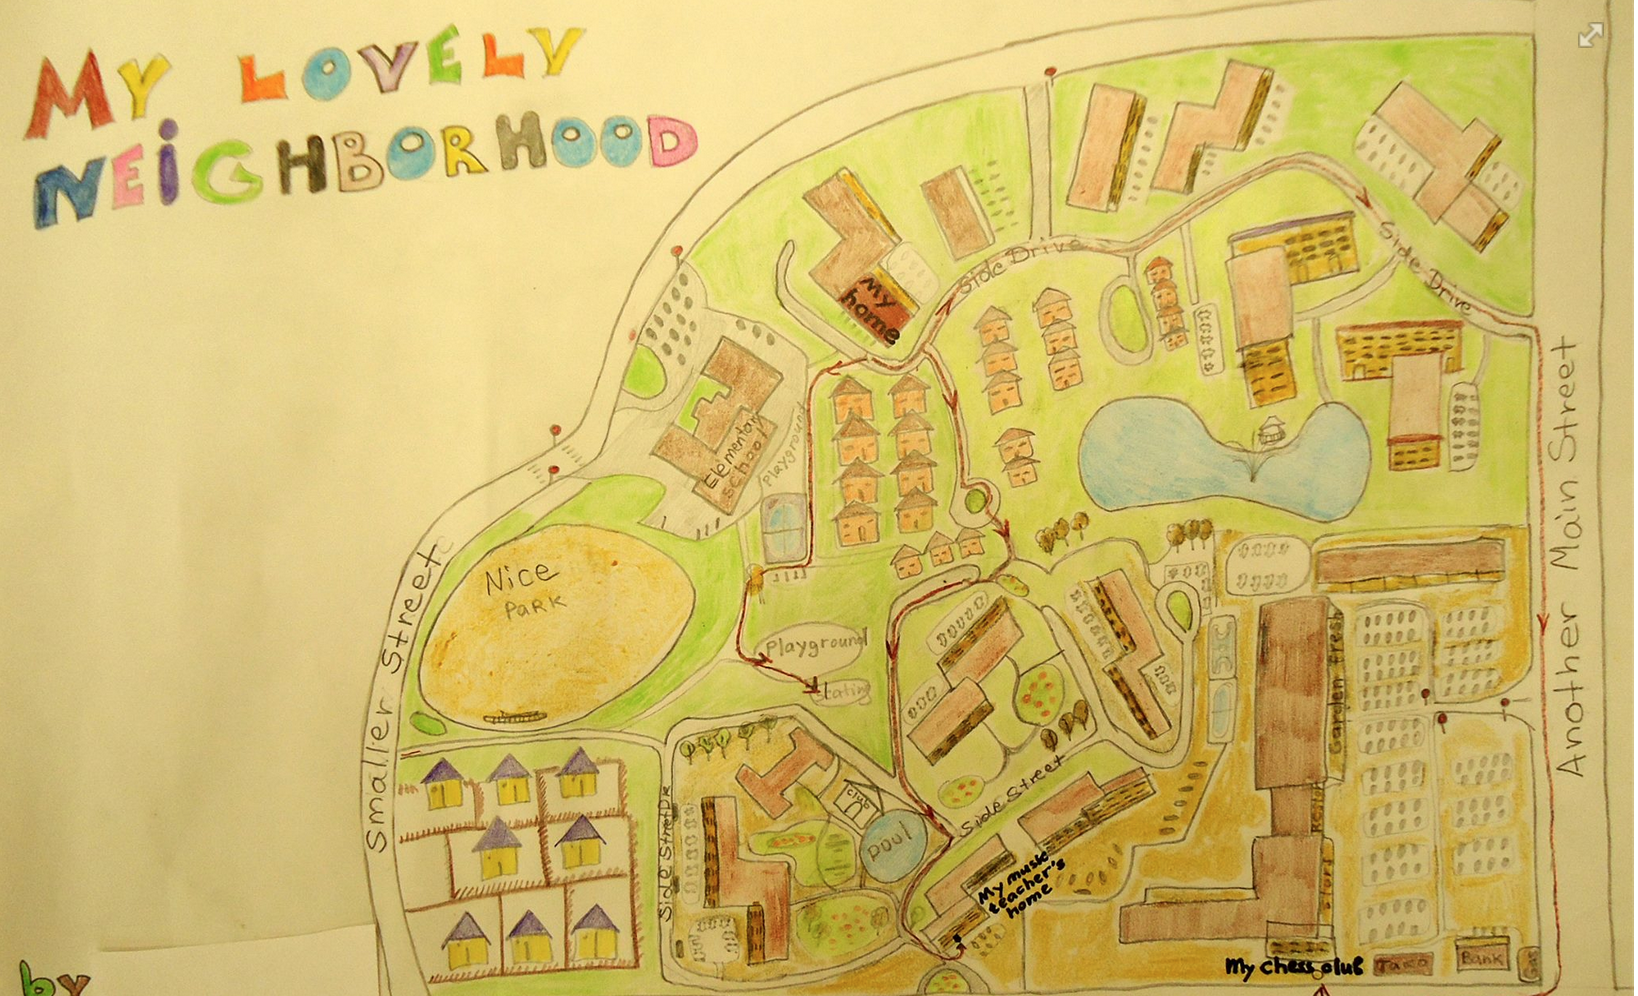 A neighborhood map by Out of Eden Learn student in Illinois, United States